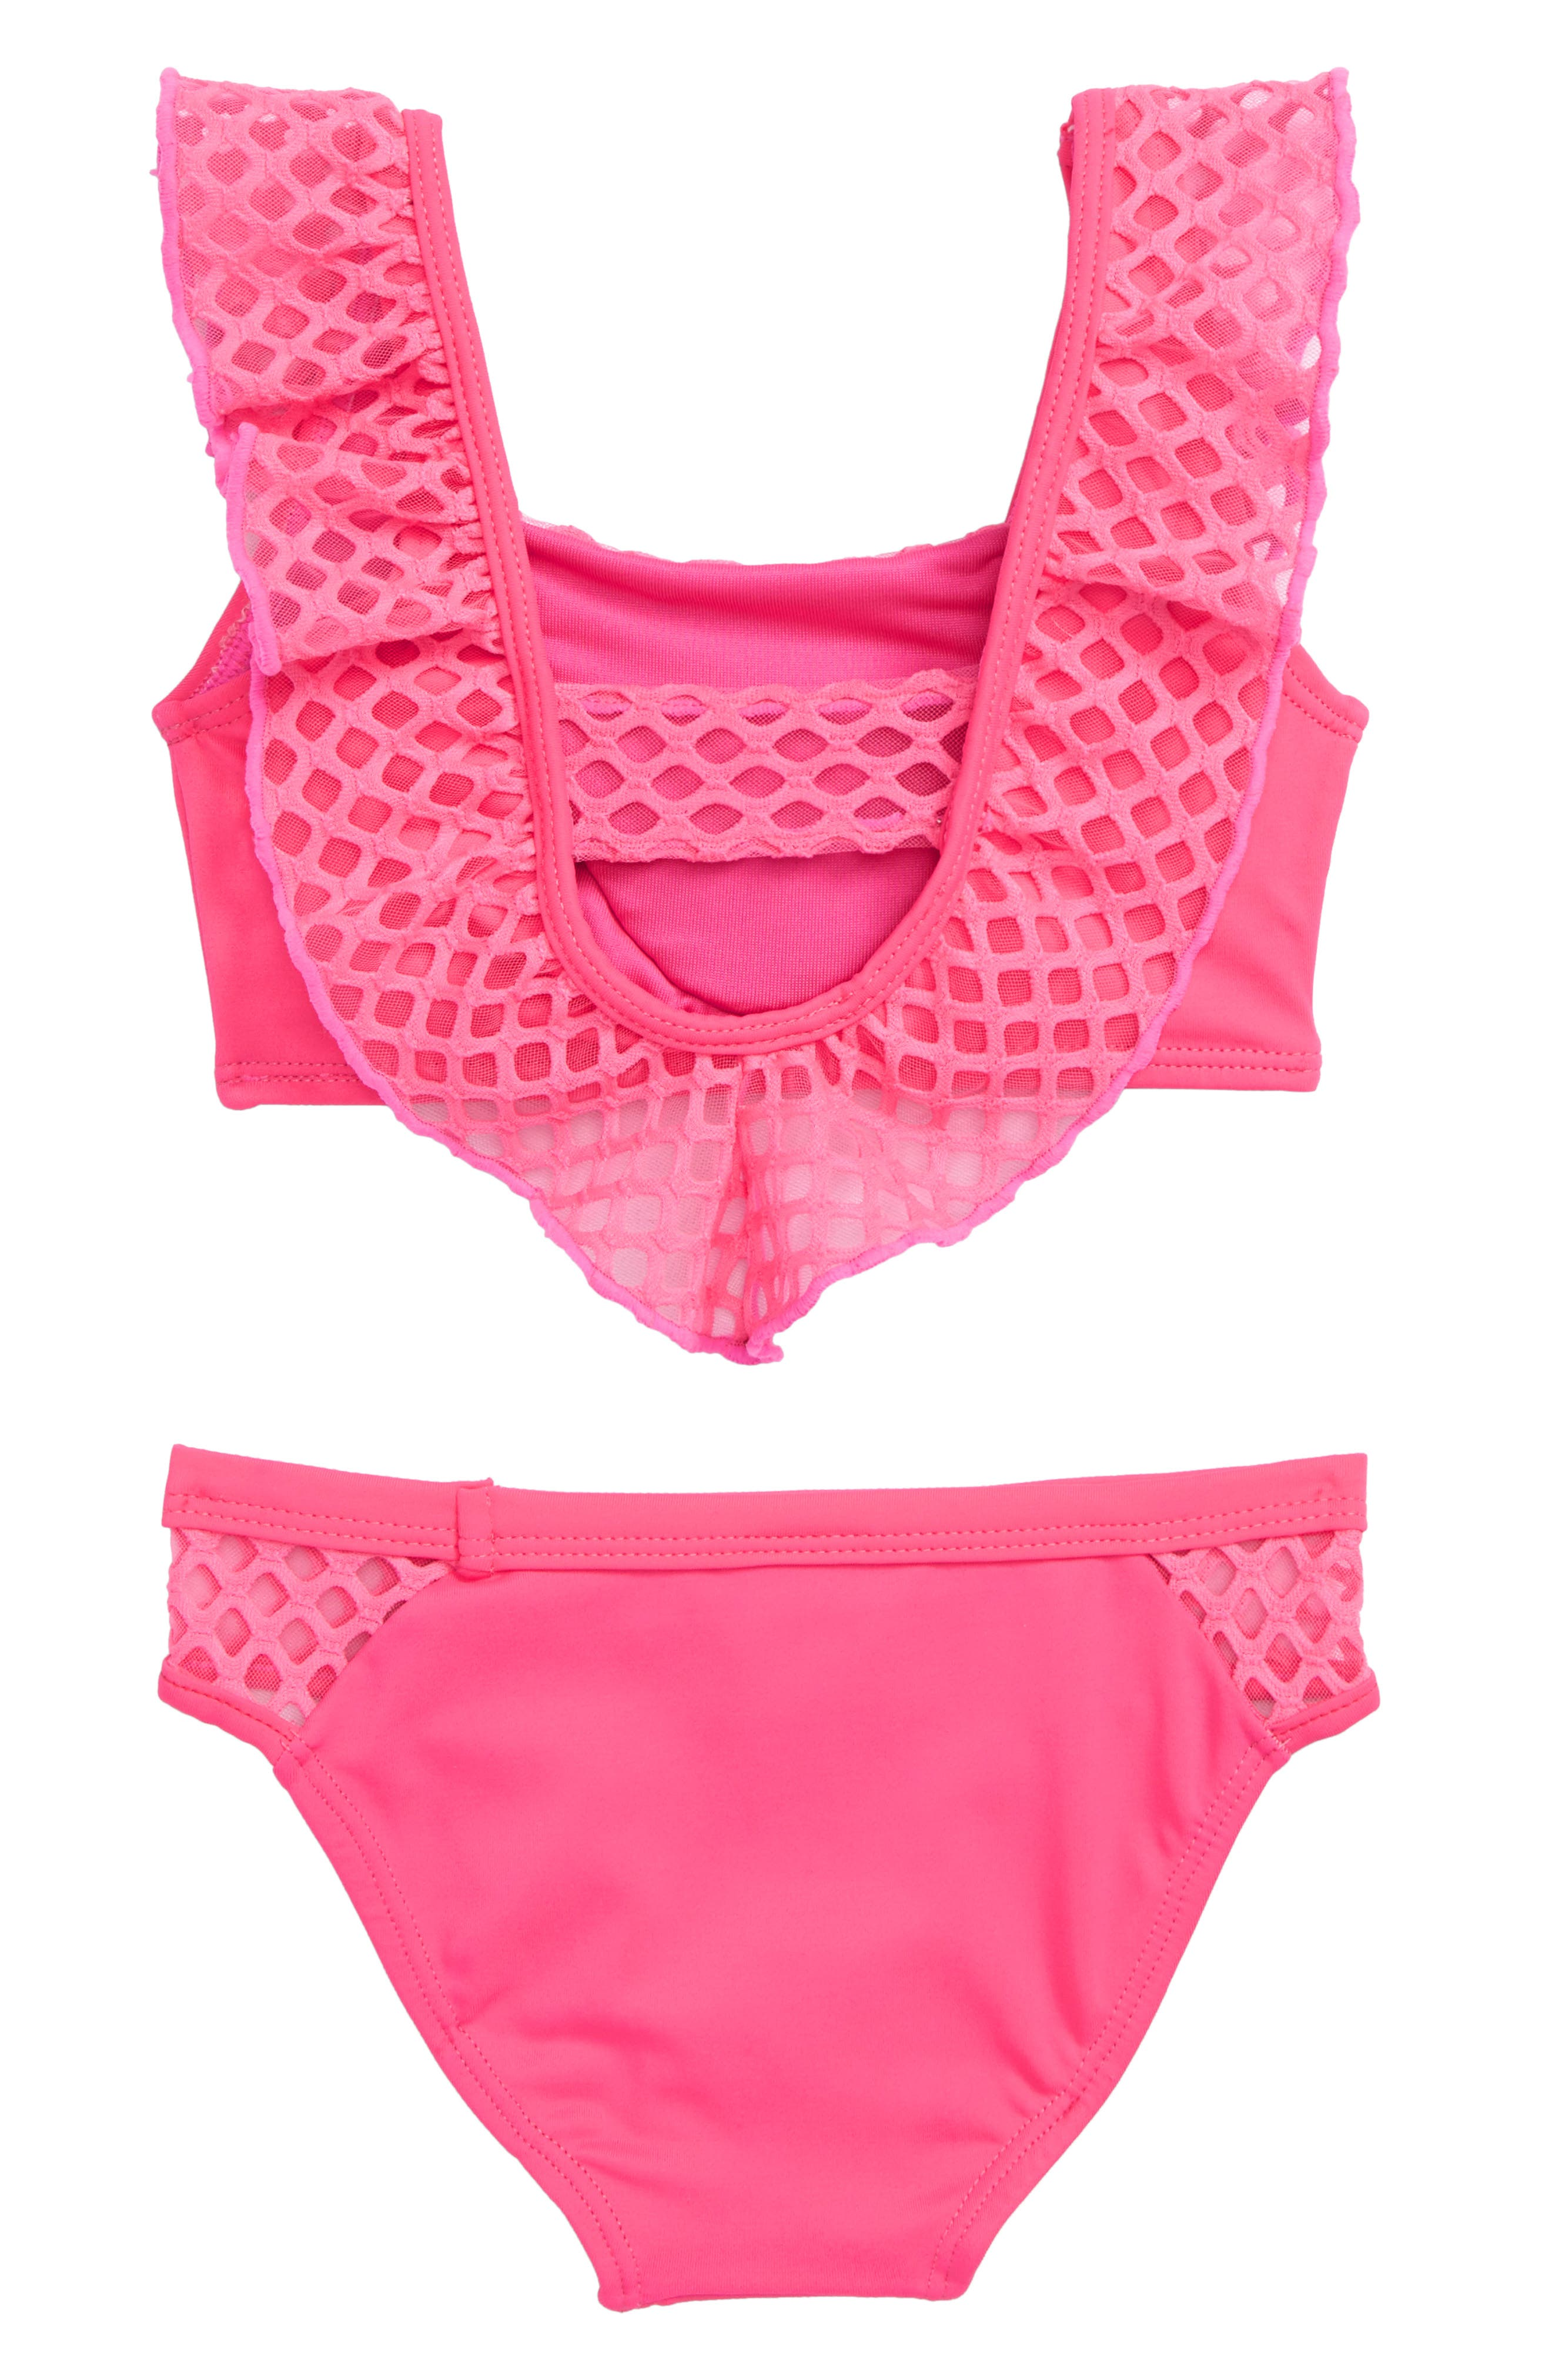 Blake Ruffle Two-Piece Swimsuit,                             Alternate thumbnail 2, color,                             Neon Pink